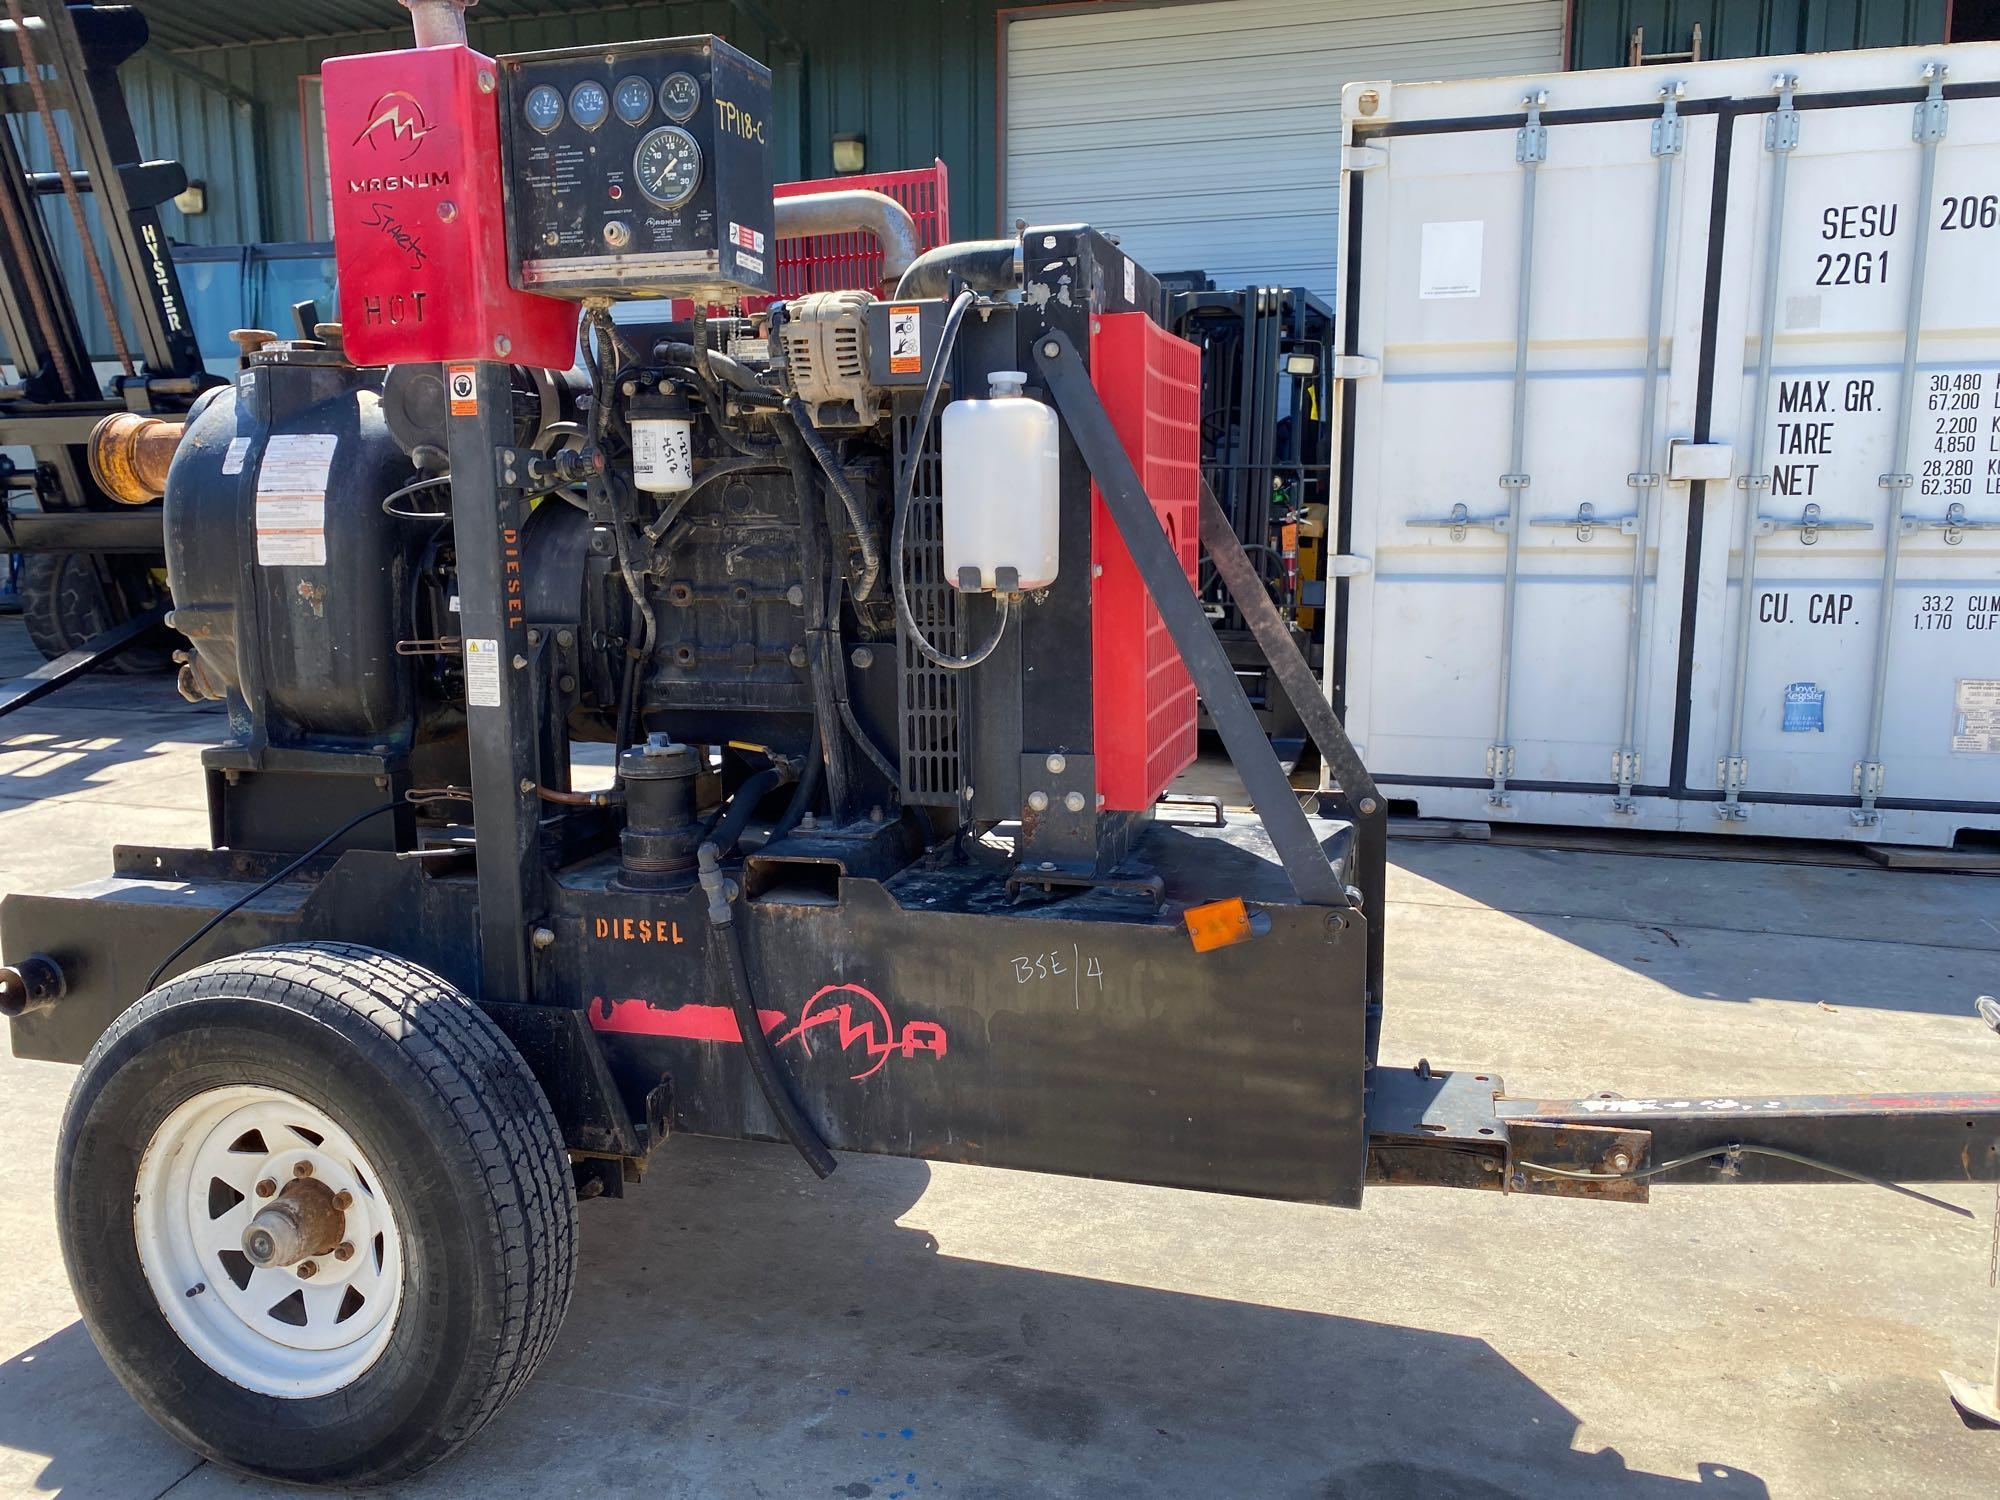 TRAILER MOUNTED MAGNUM 4 INCH DIESEL PUMP, RUNS AND OPERATES - Image 4 of 9